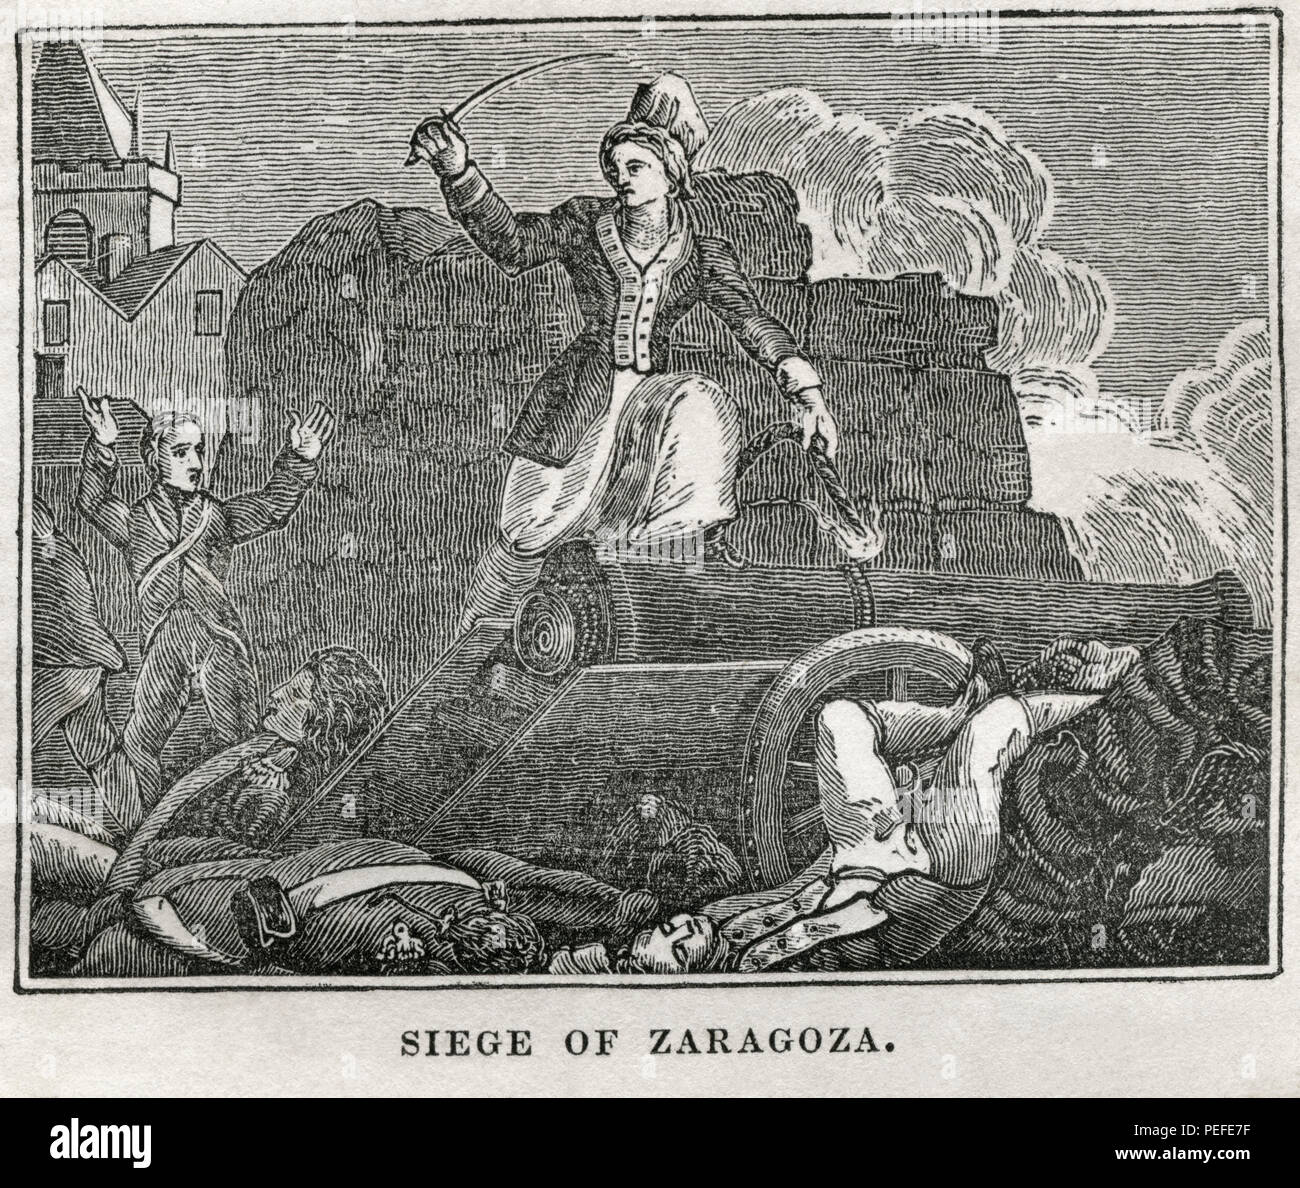 Siege of Zaragoza, Illustration from the Book, Historical Cabinet, L.H. Young Publisher, New Haven, 1834 - Stock Image